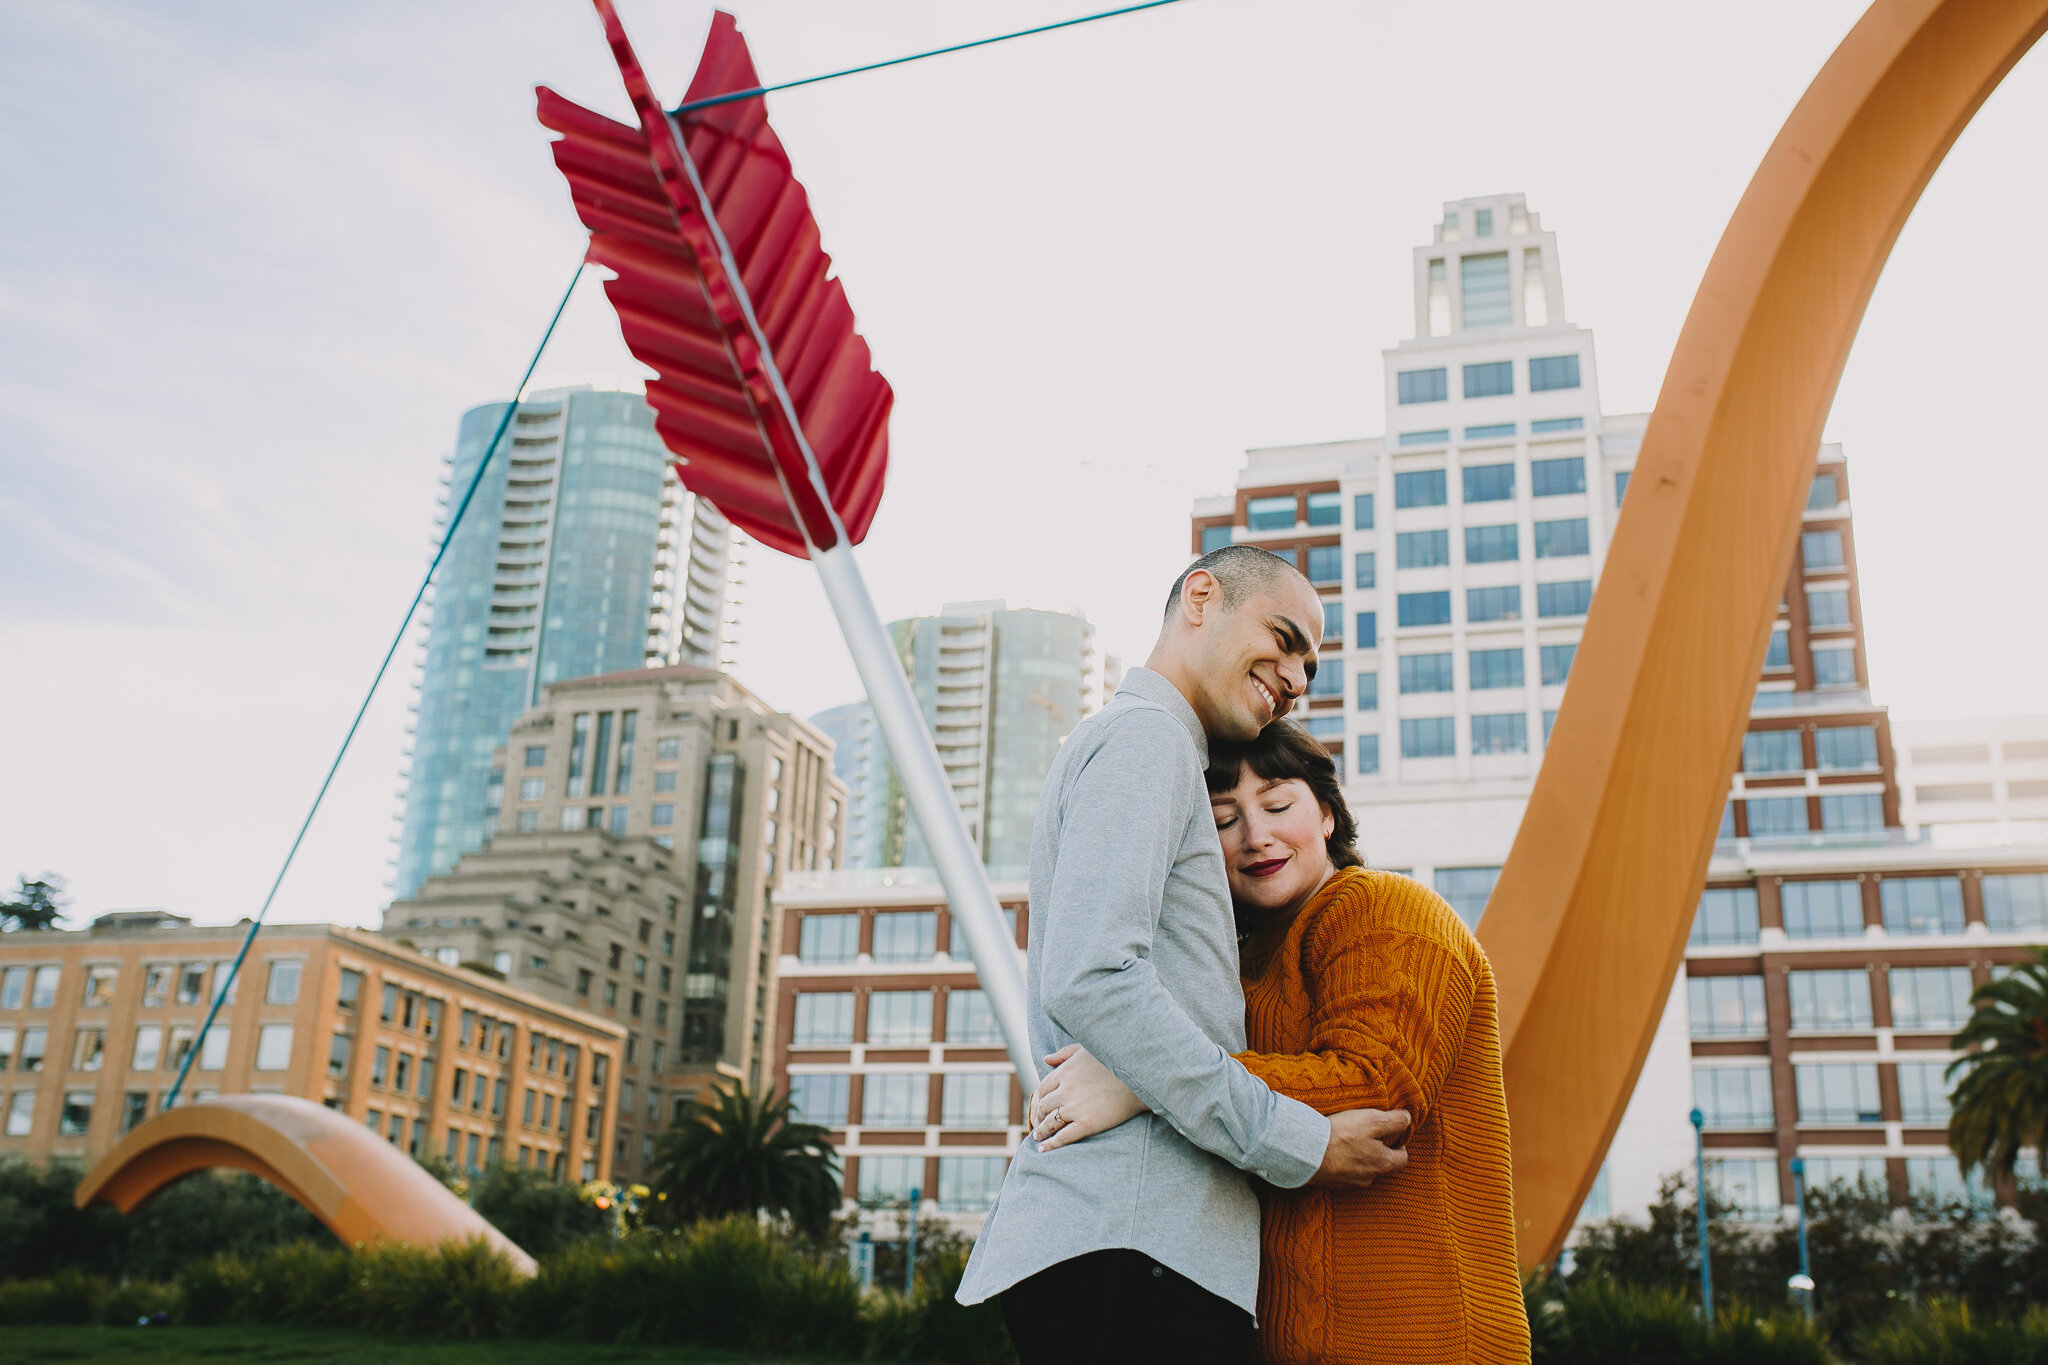 Archer+Inspired+Photography+San+Francisco+SF+Engagement+Session+Sutro+Baths+Ferry+Building+Lifestyle+Wedding+Photographer-38.jpg